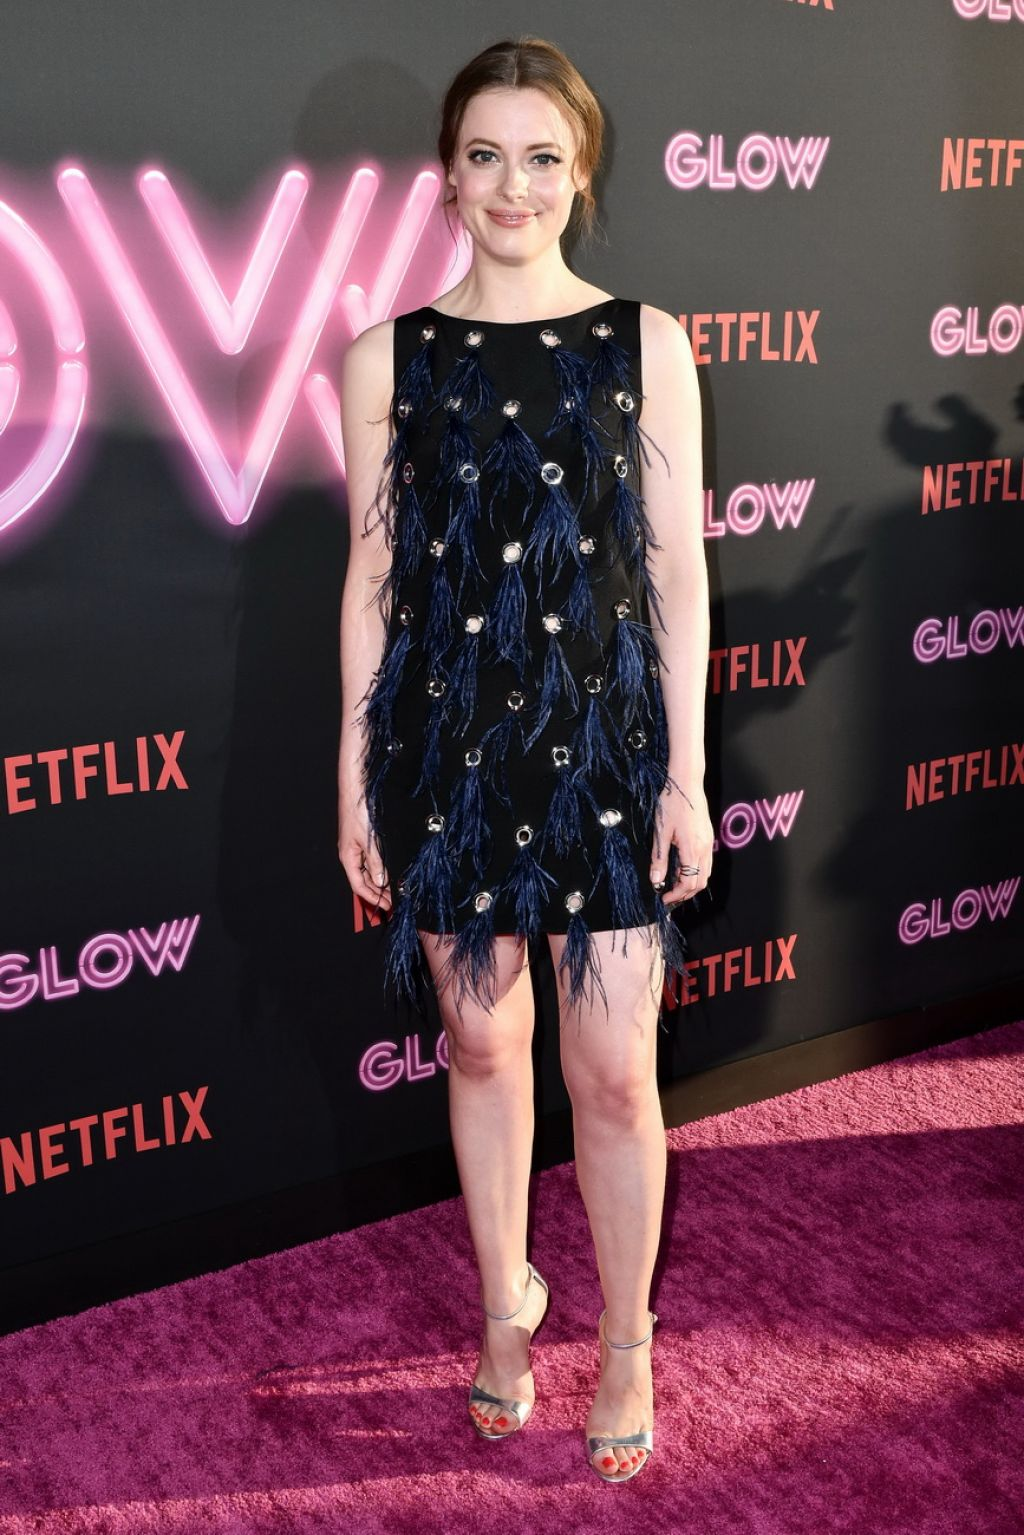 Gillian Jacobs Glow Tv Show Premiere In Los Angeles 06